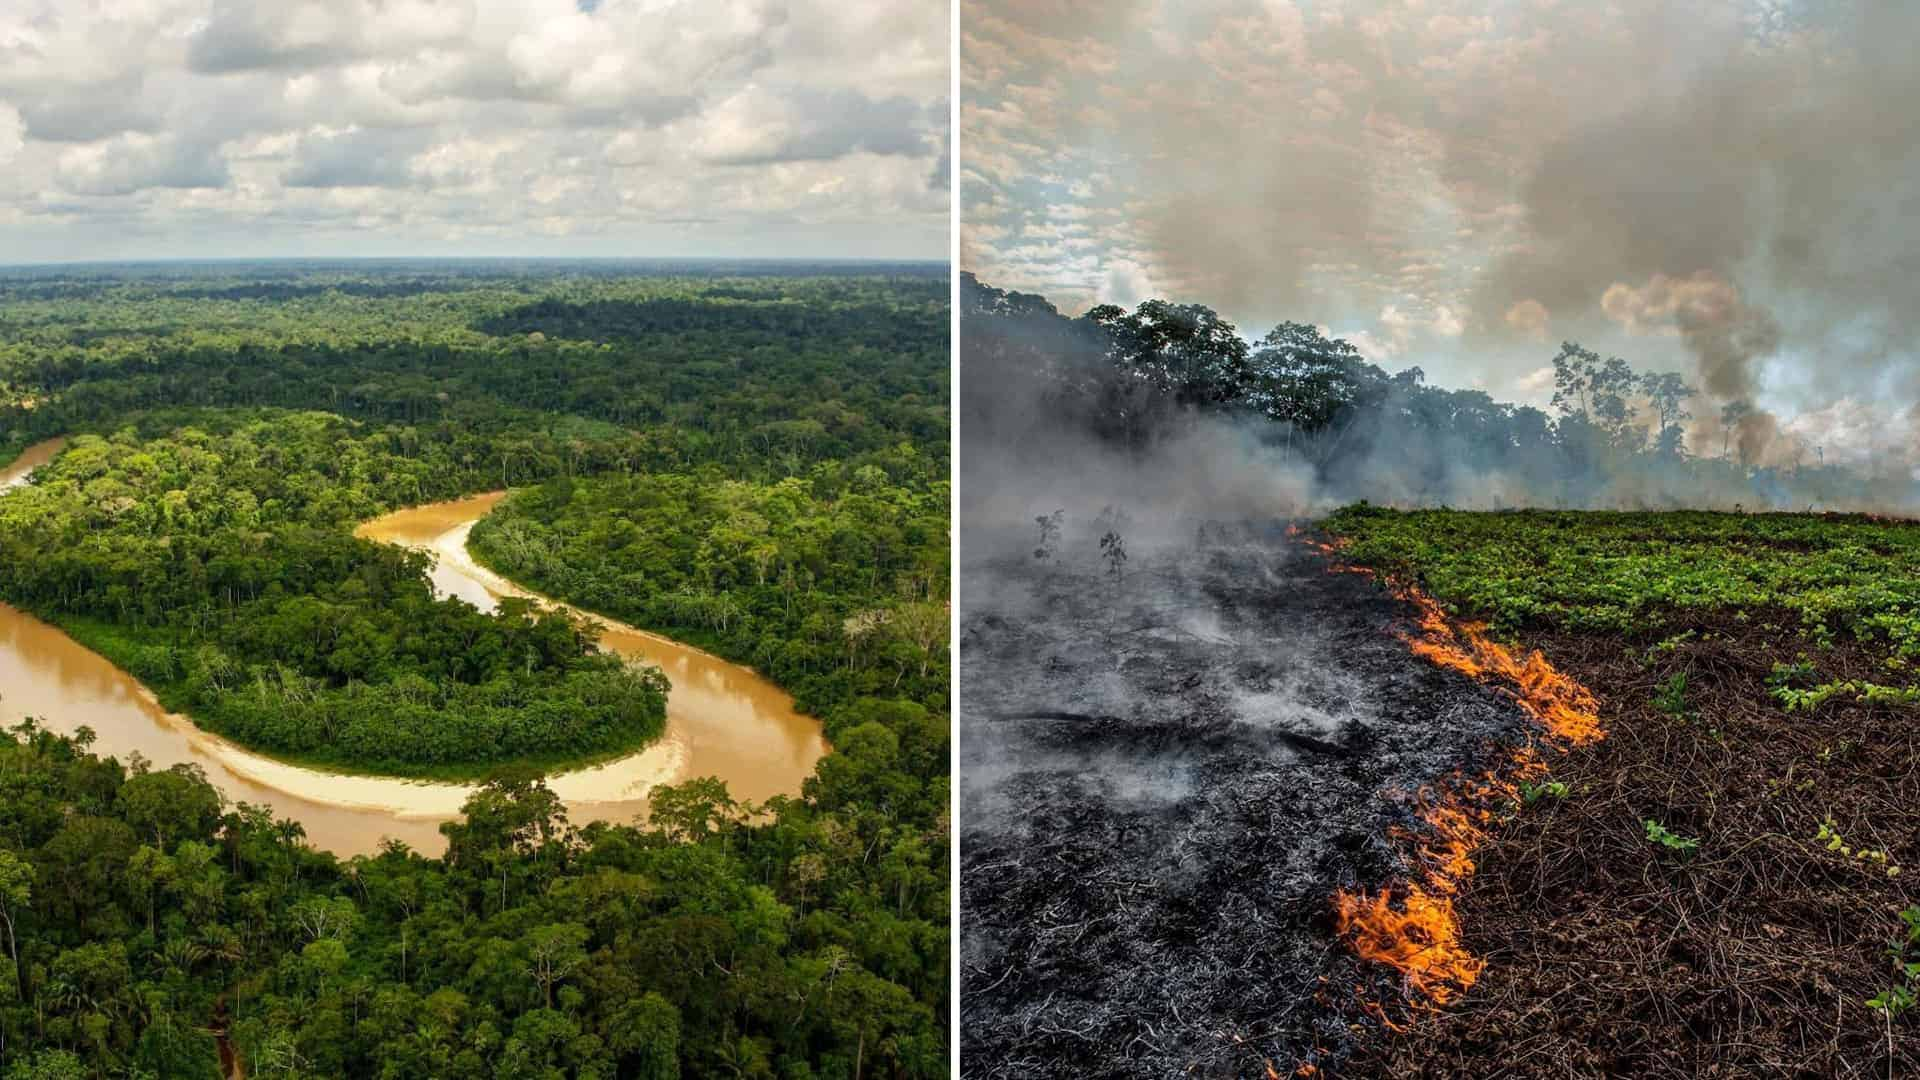 Amazon the largest forest in the world is with the highest destruction